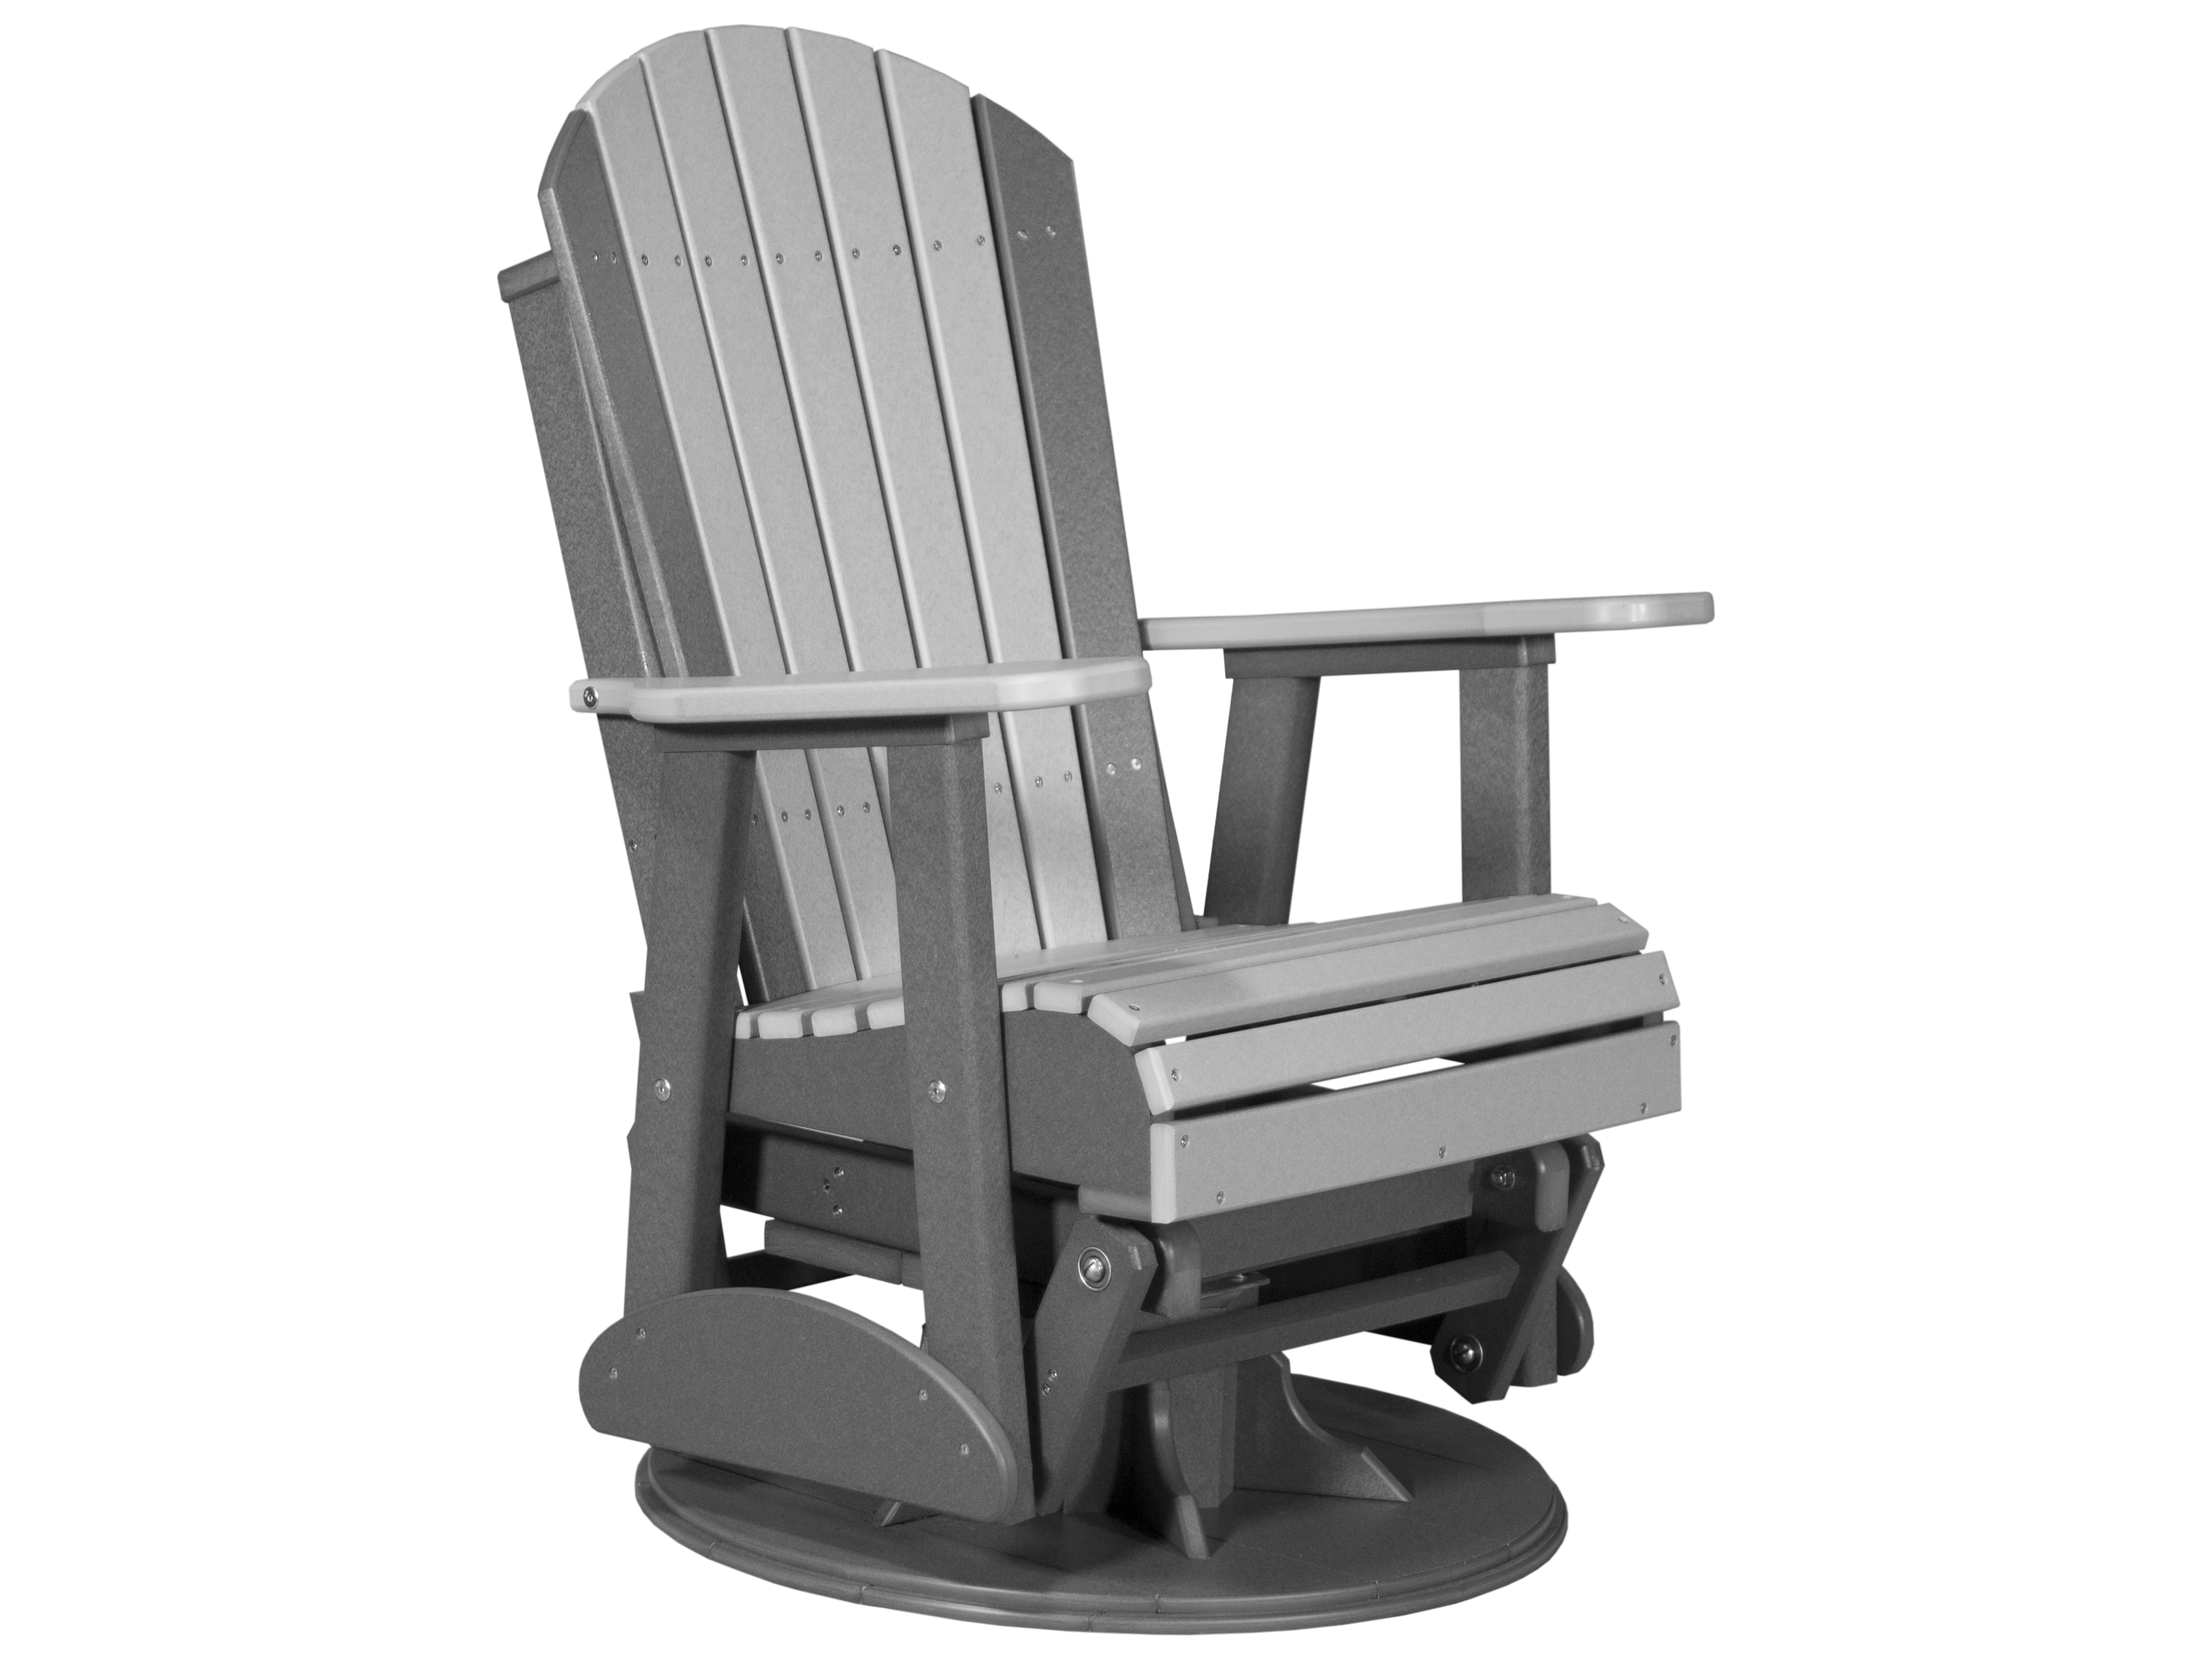 plastic swivel chair white wood desk with wheels luxcraft recycled 2 39 adirondack glider